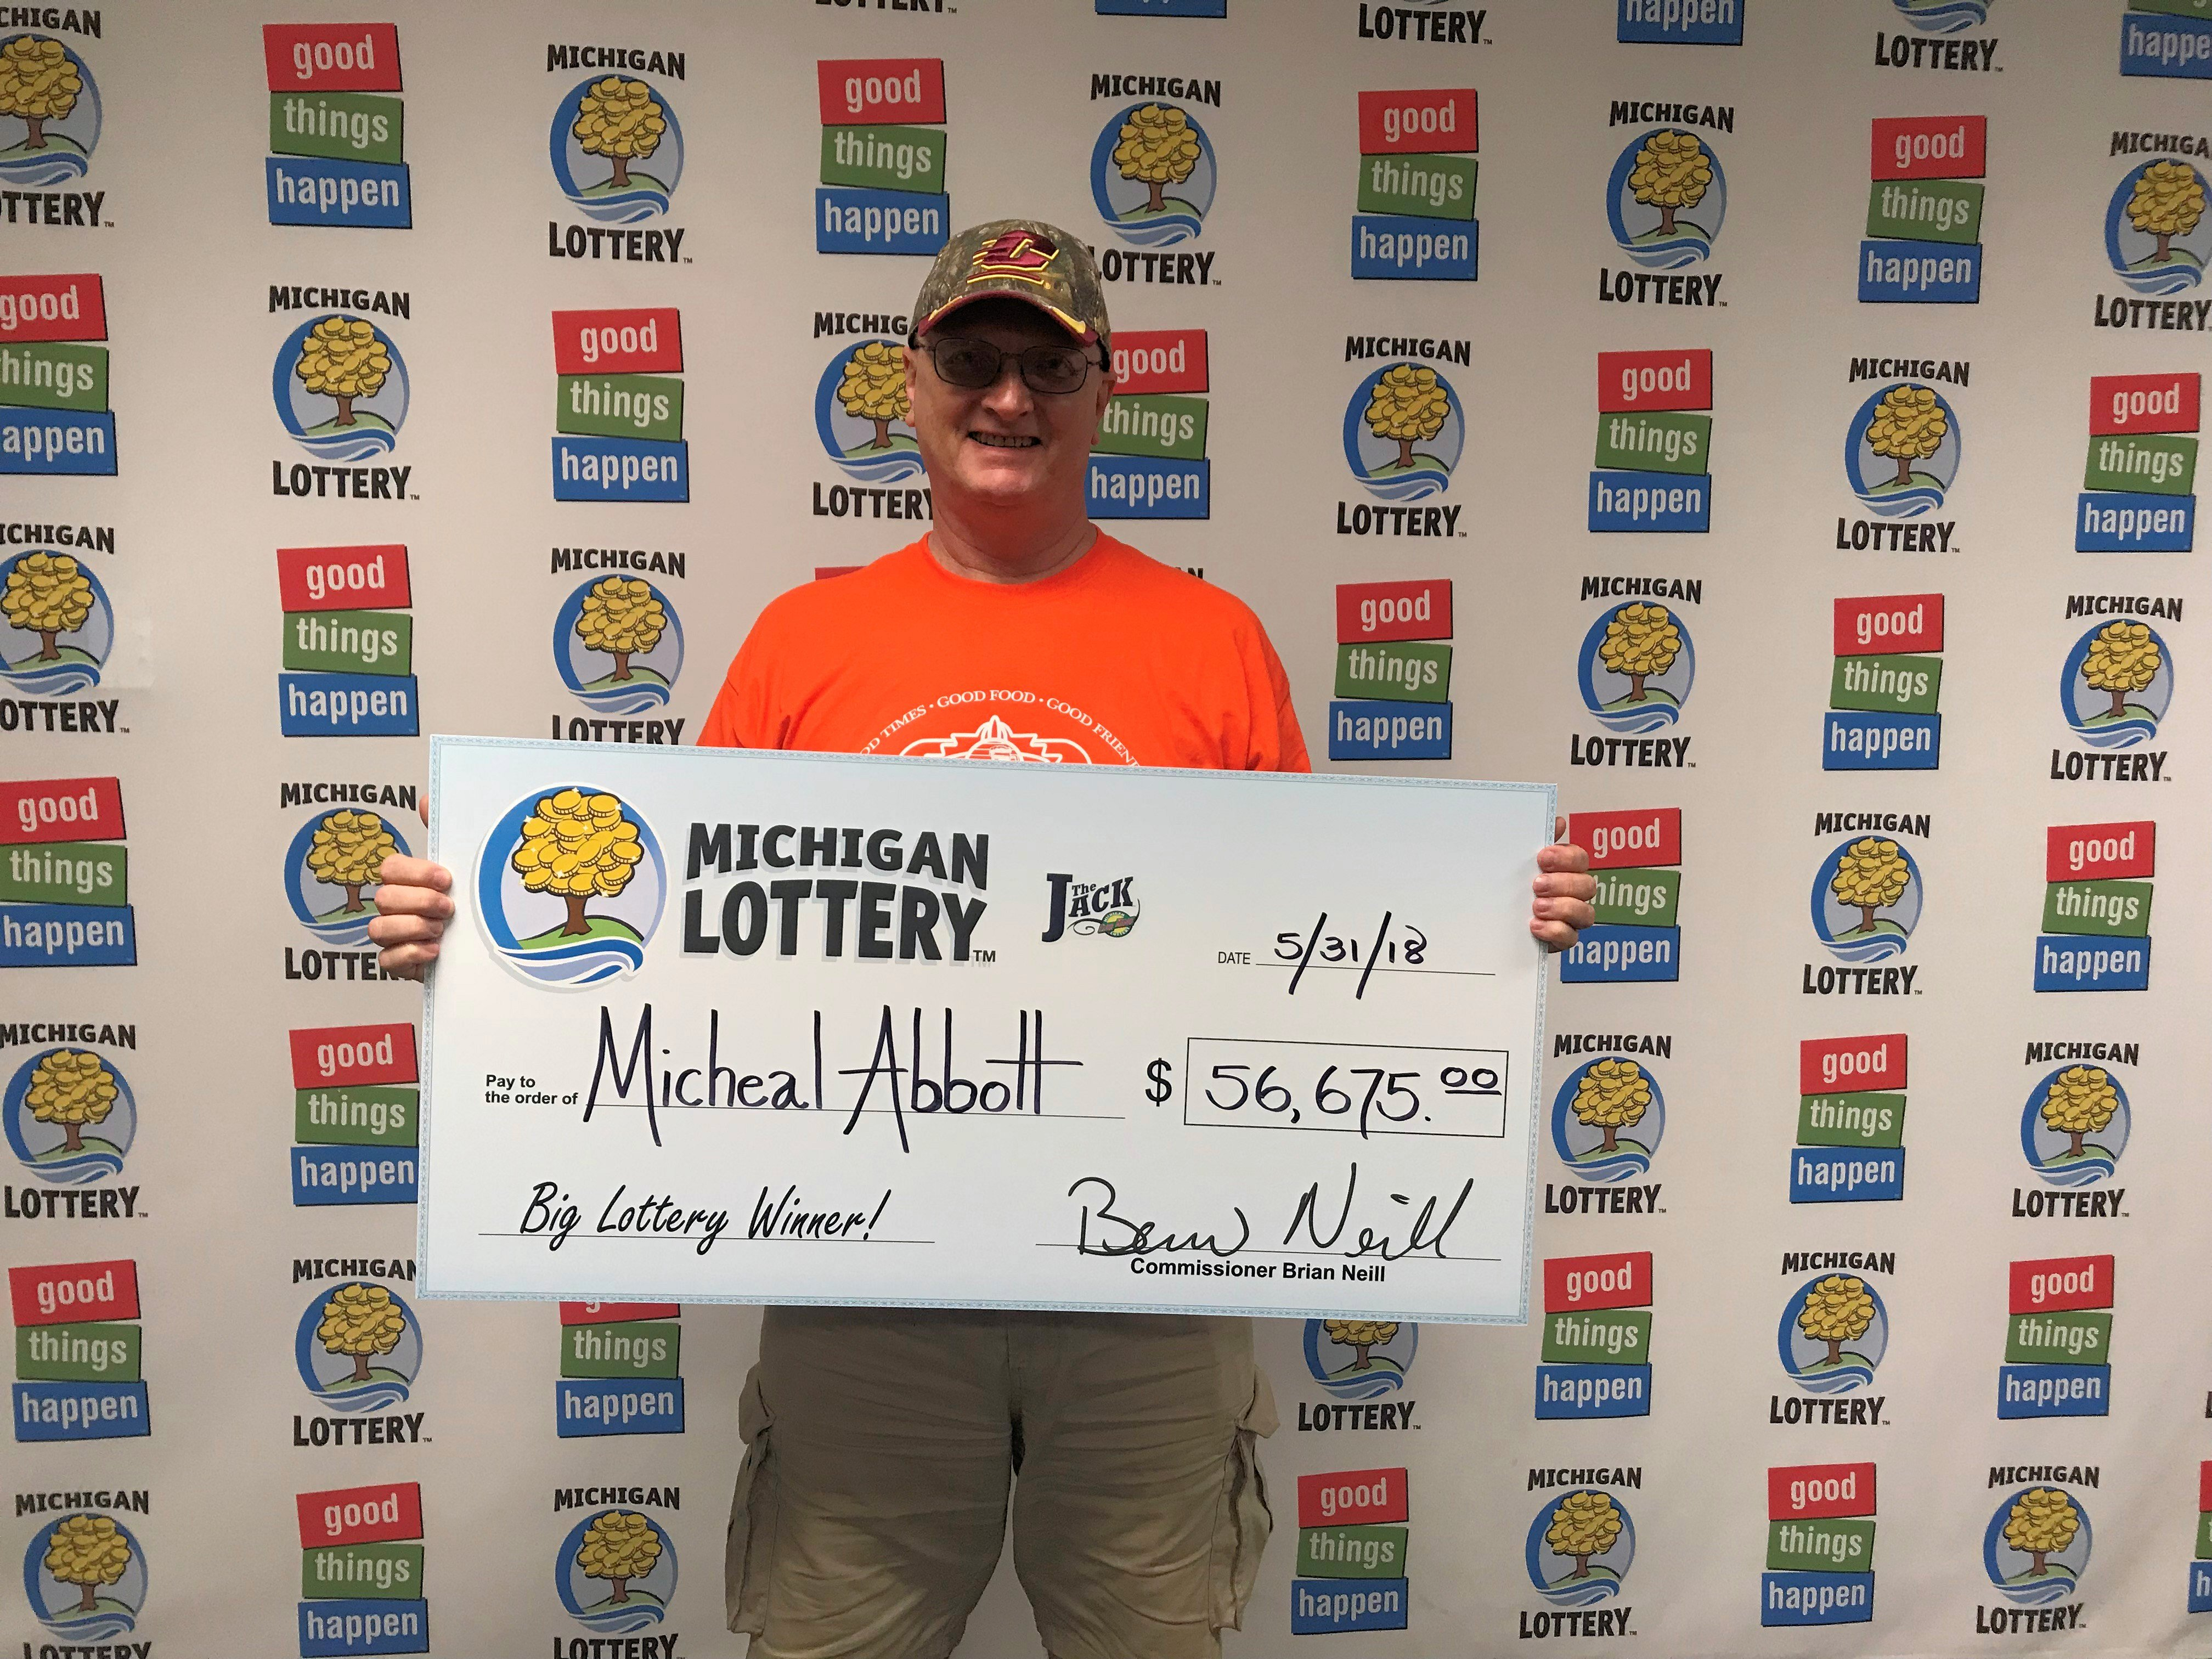 Michigan lottery players club prizes for games